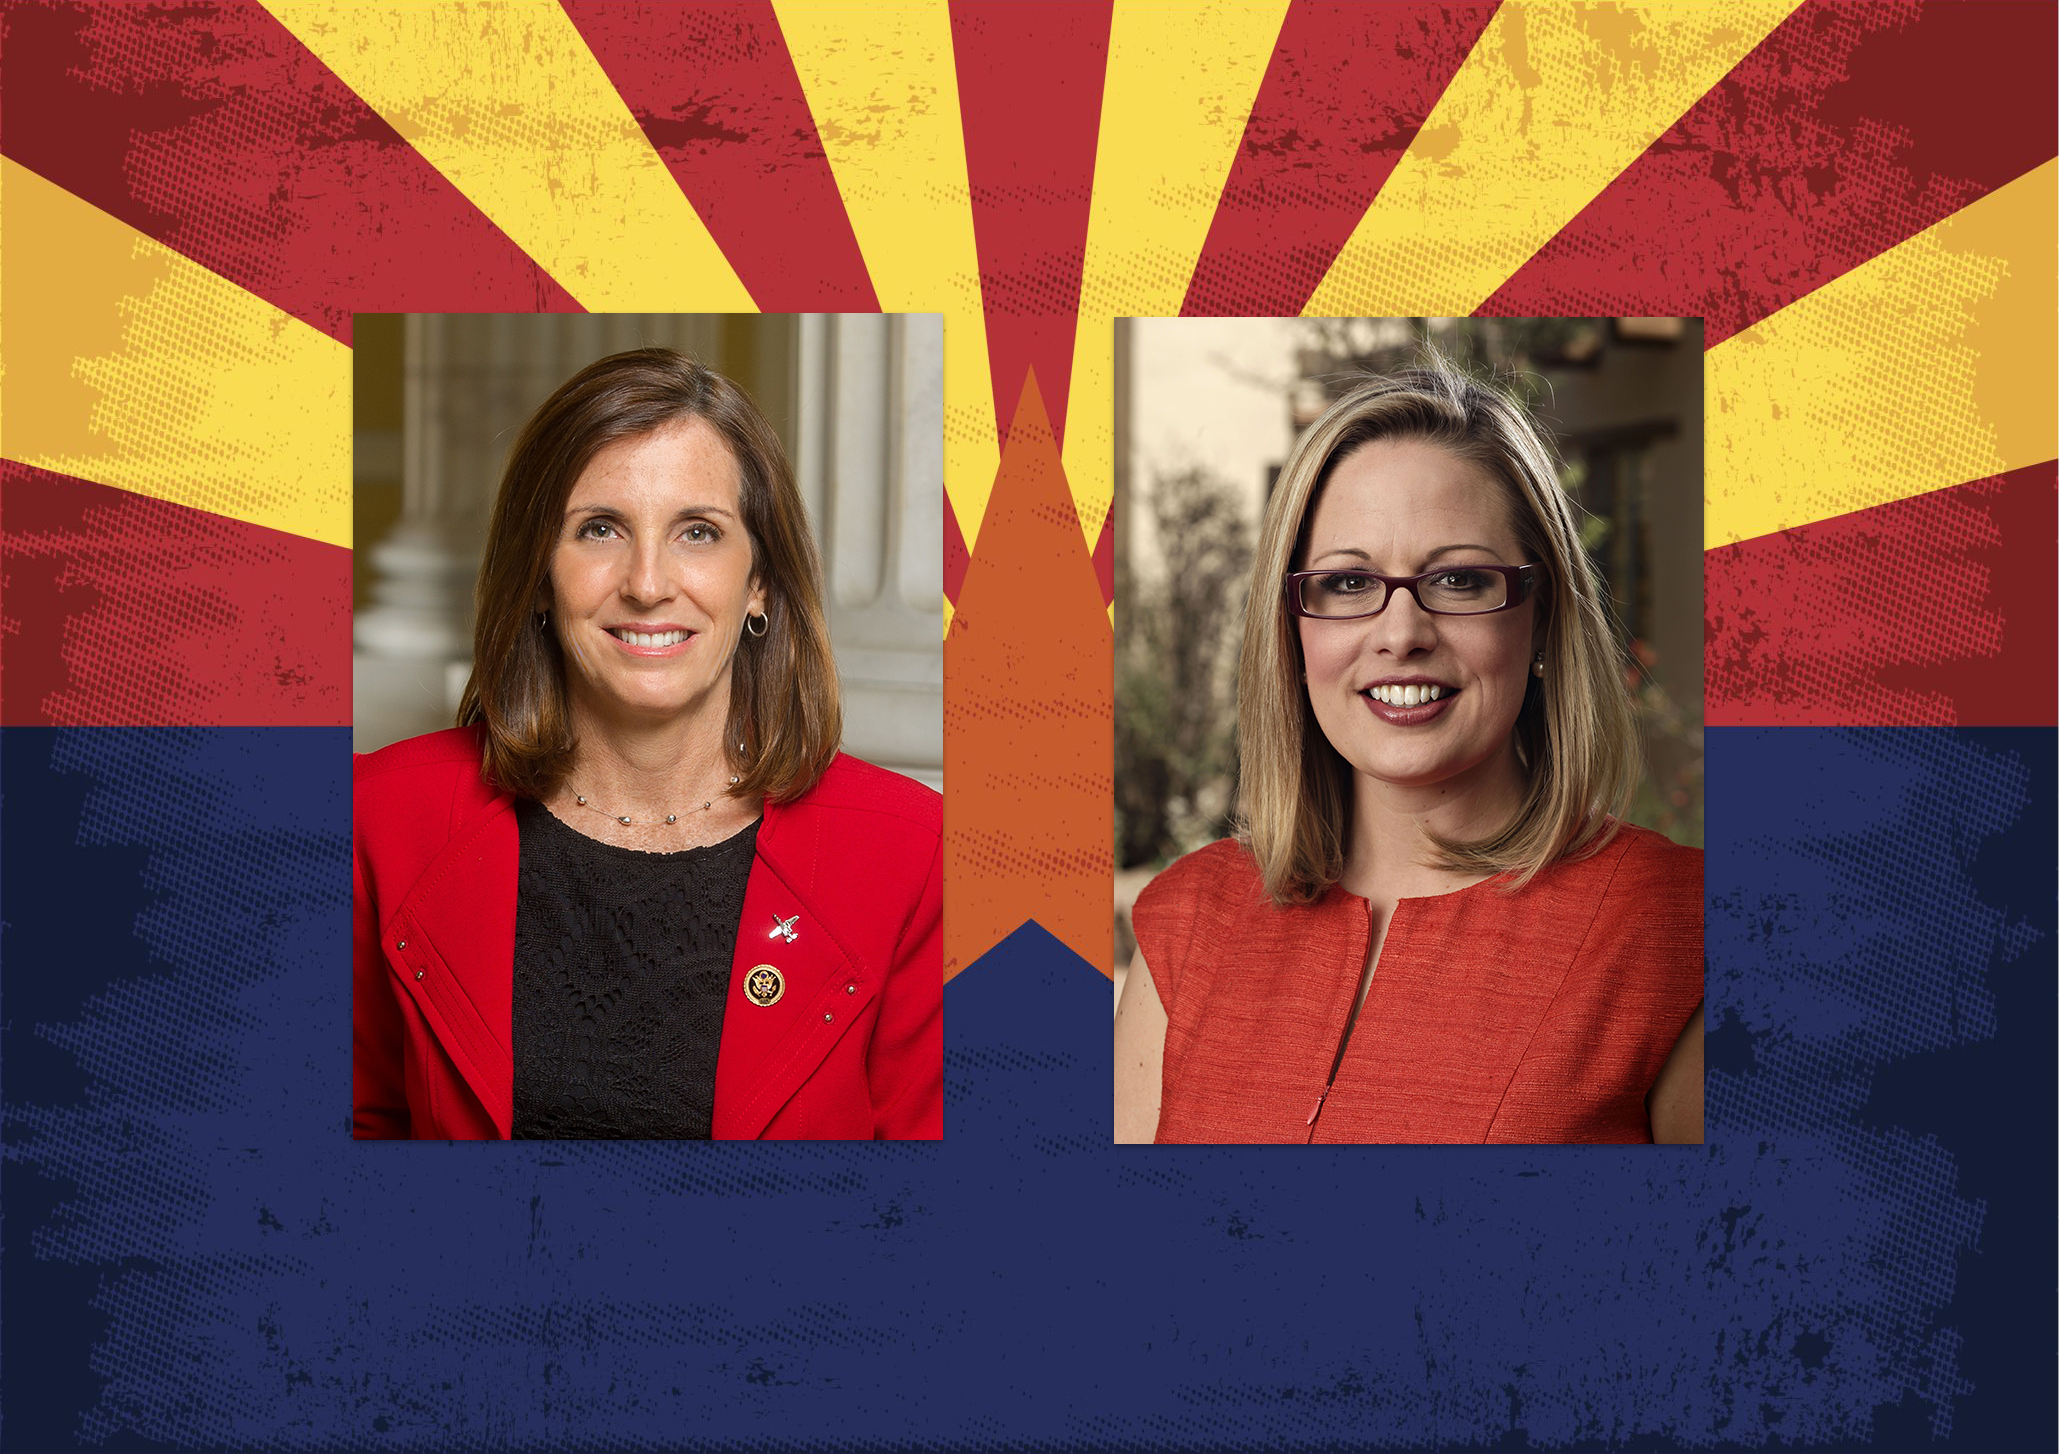 Arizona Senate election: Where Martha McSally and Kyrsten Sinema stand on border security